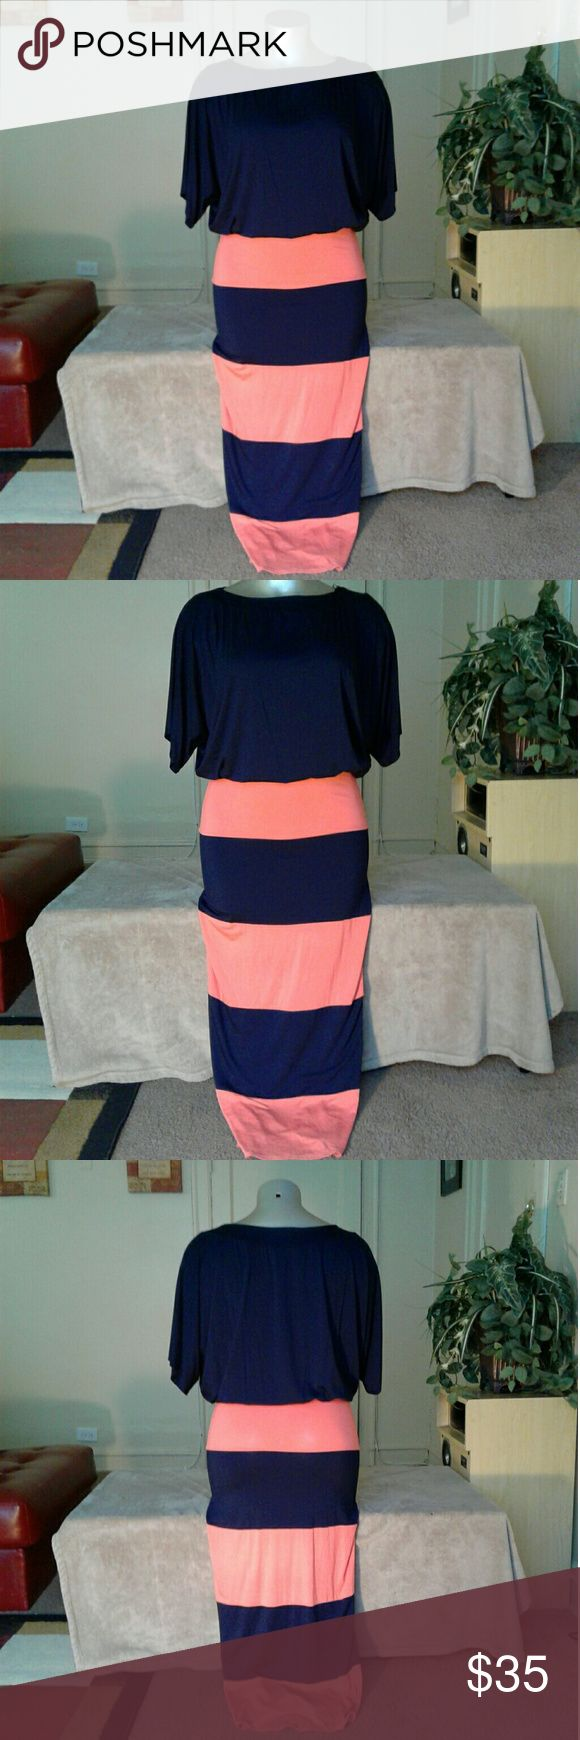 Go Couture Peach Navy Blue Stripped Maxi Dress Dress says XL but fits like a 2X Dresses Maxi